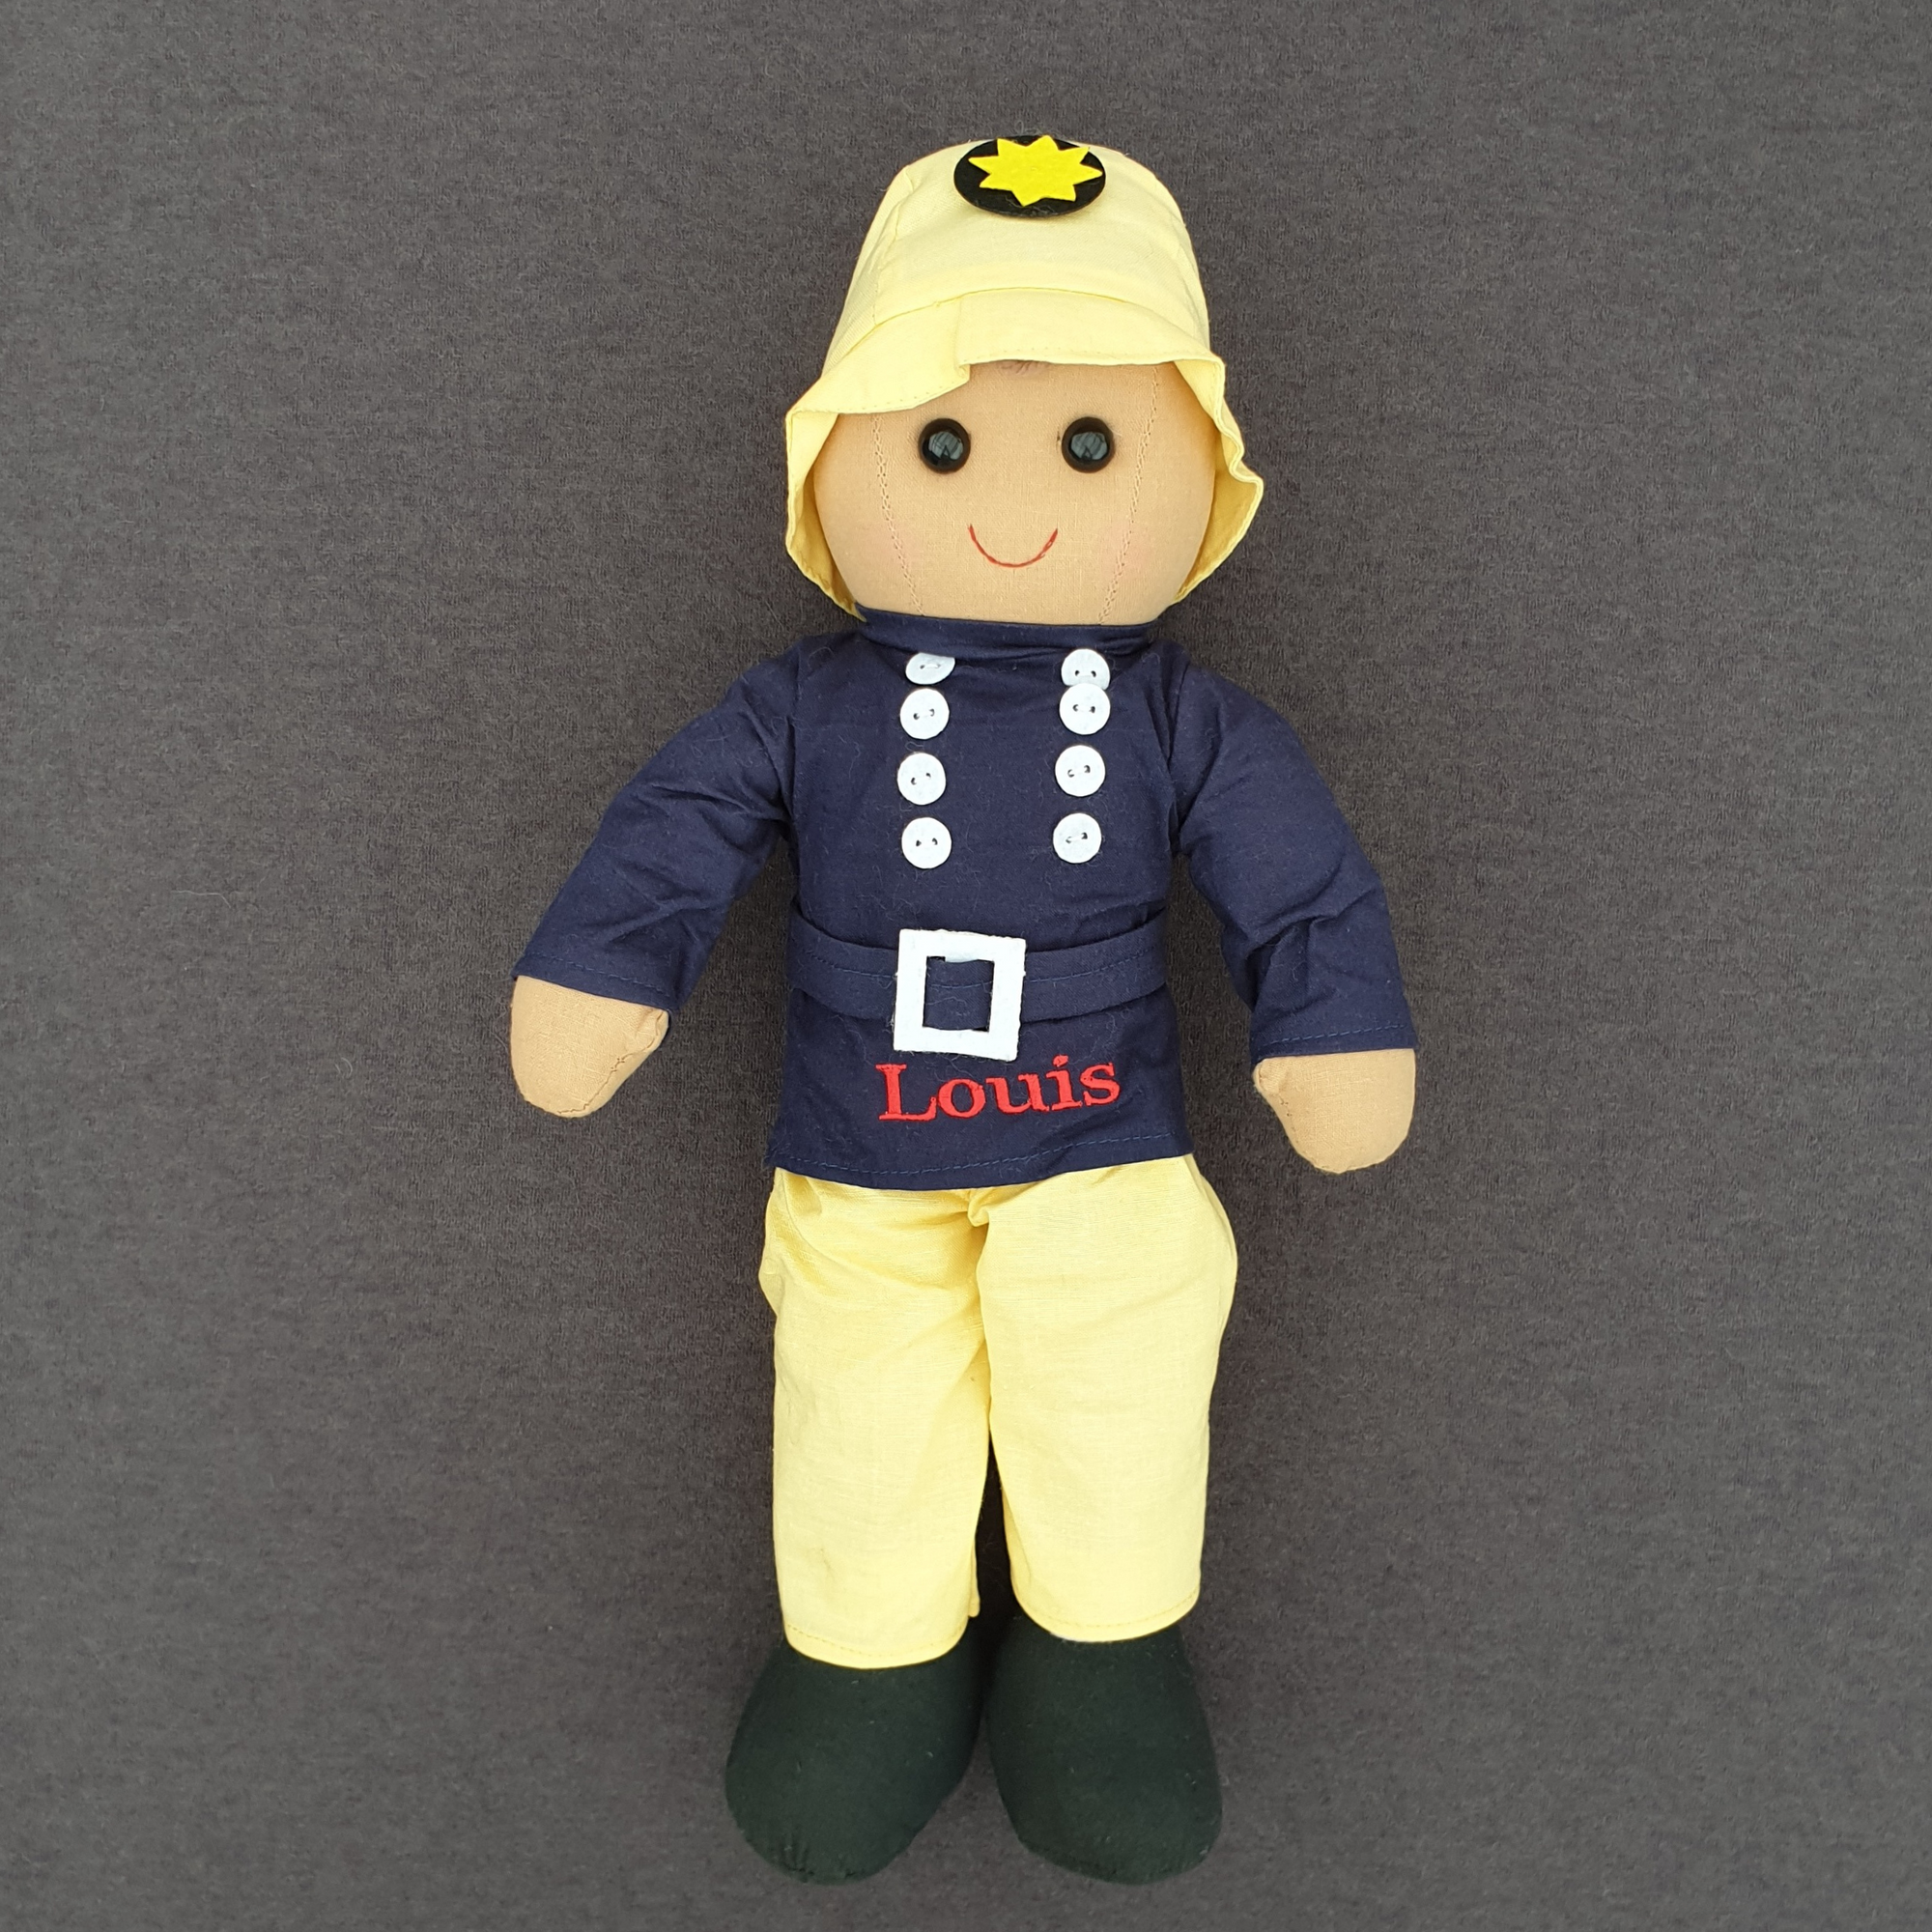 Personalised fireman ragdoll. The doll is wearing yellow trousers and a yellow hat along with a navy blue tunic with a belt and white buttons. The doll is made from cotton and measures approximately 40 cm in height.